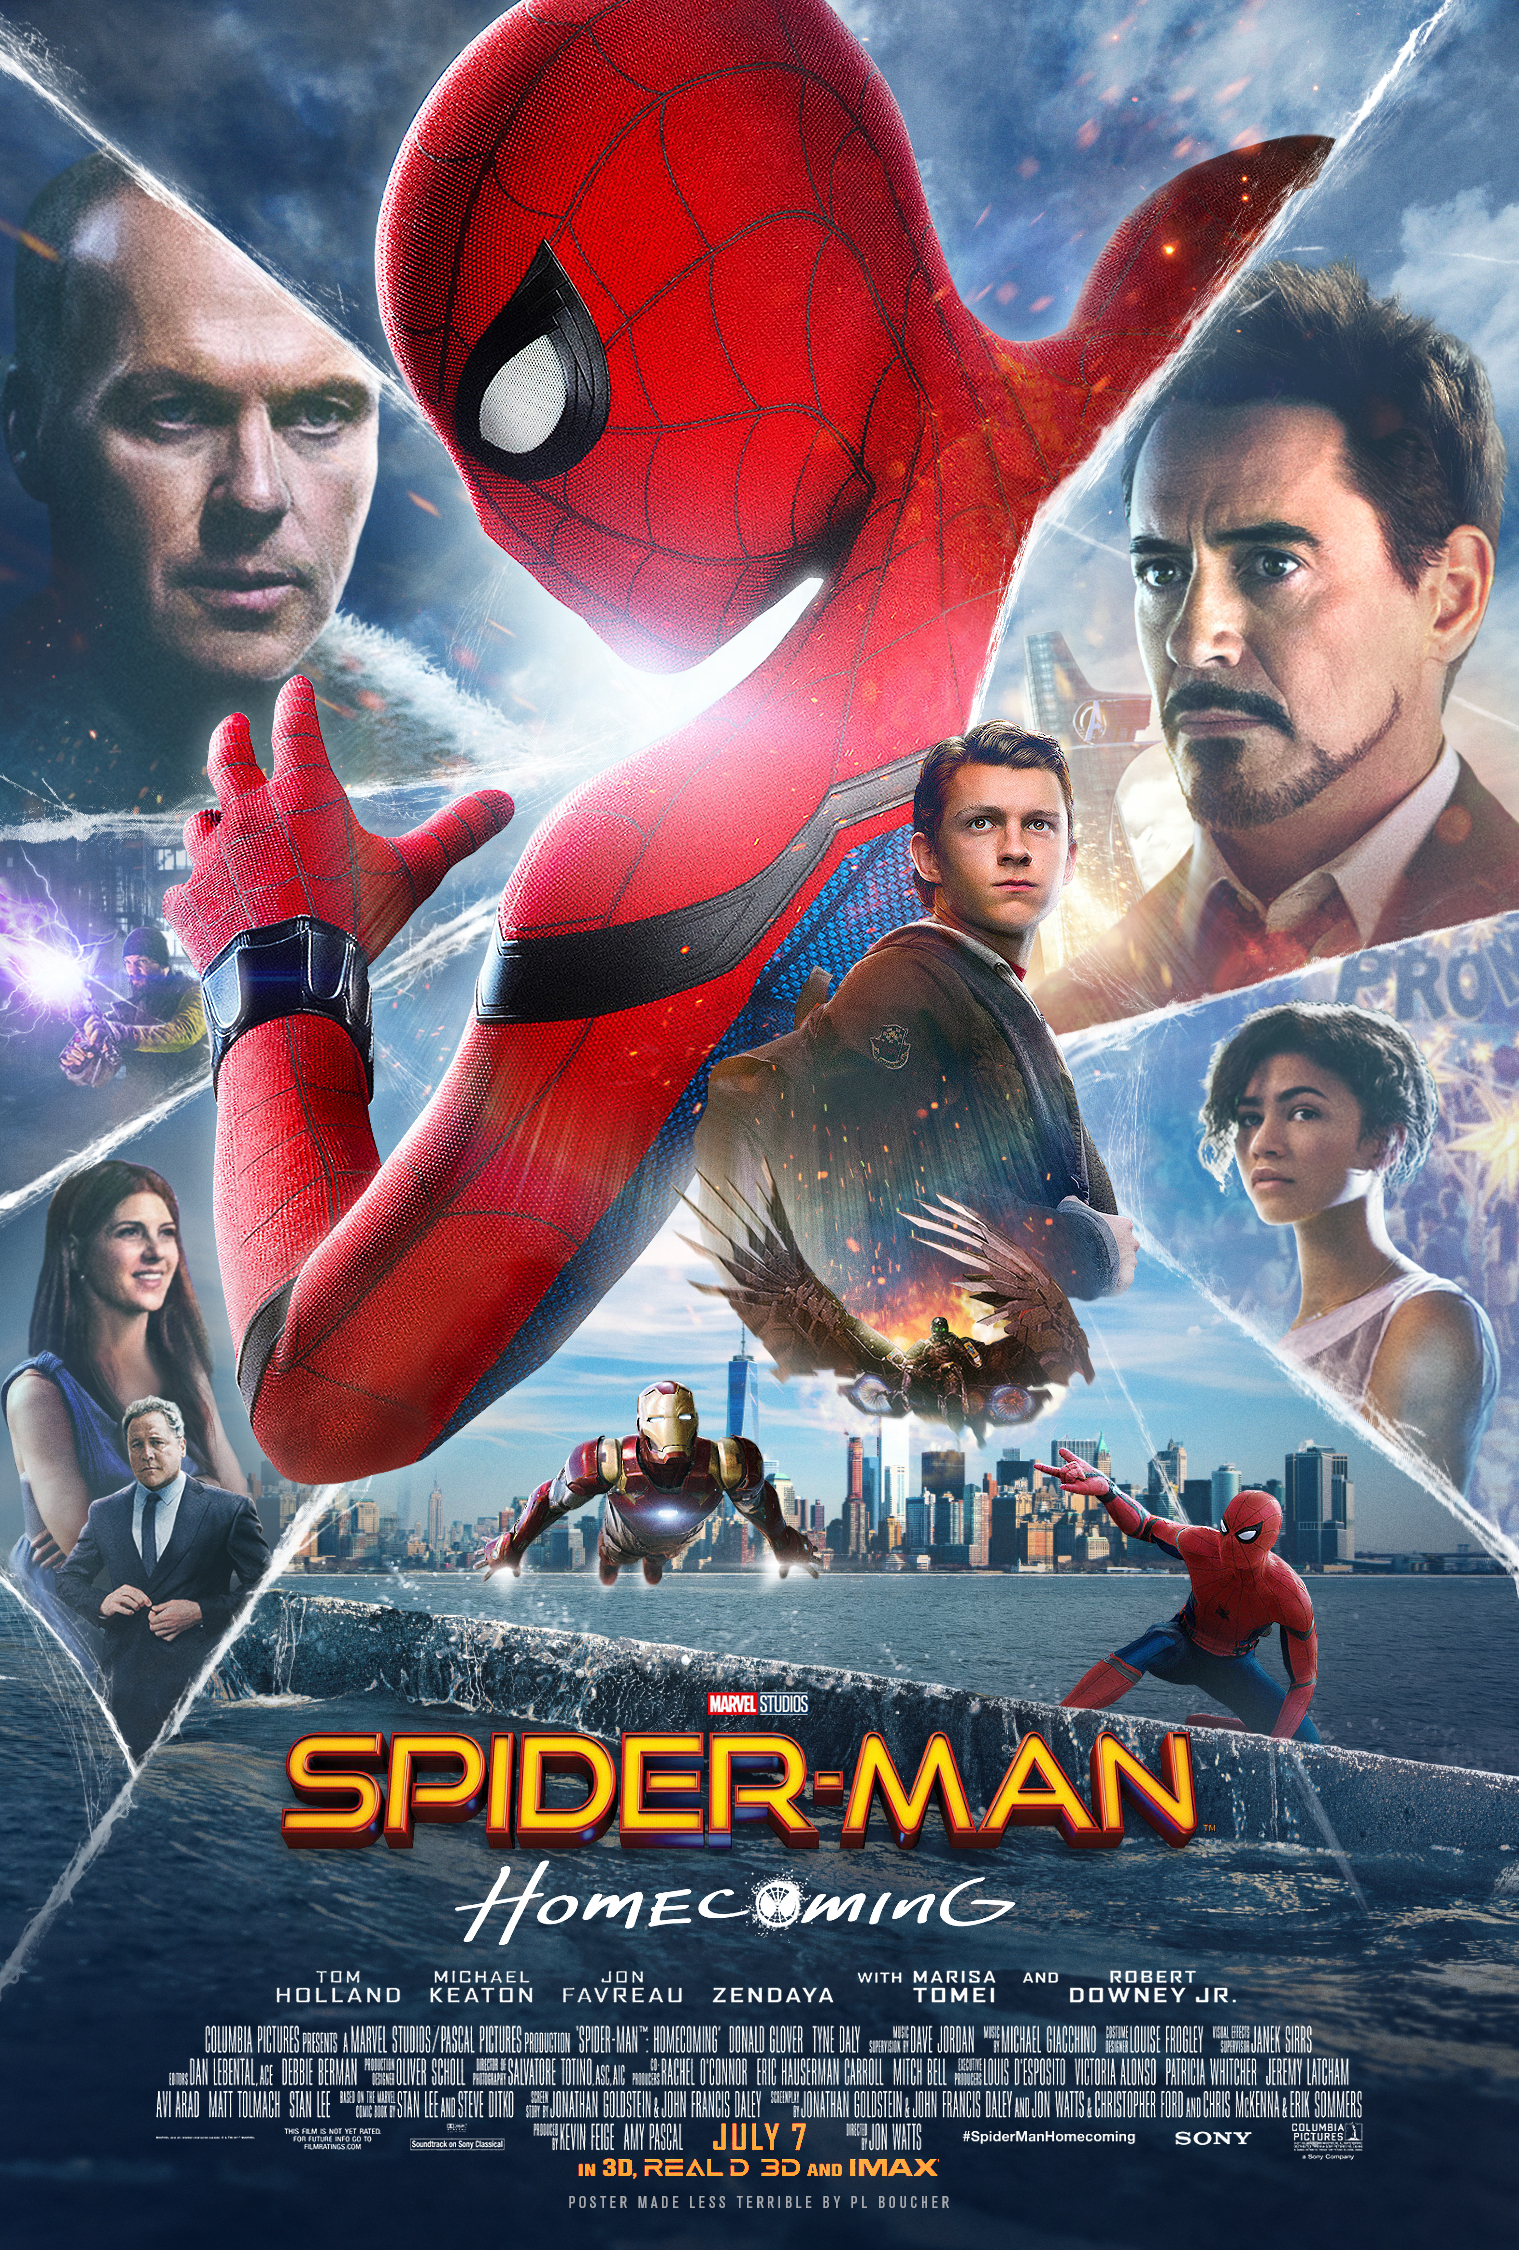 Image result for spider-man homecoming movie poster 2017